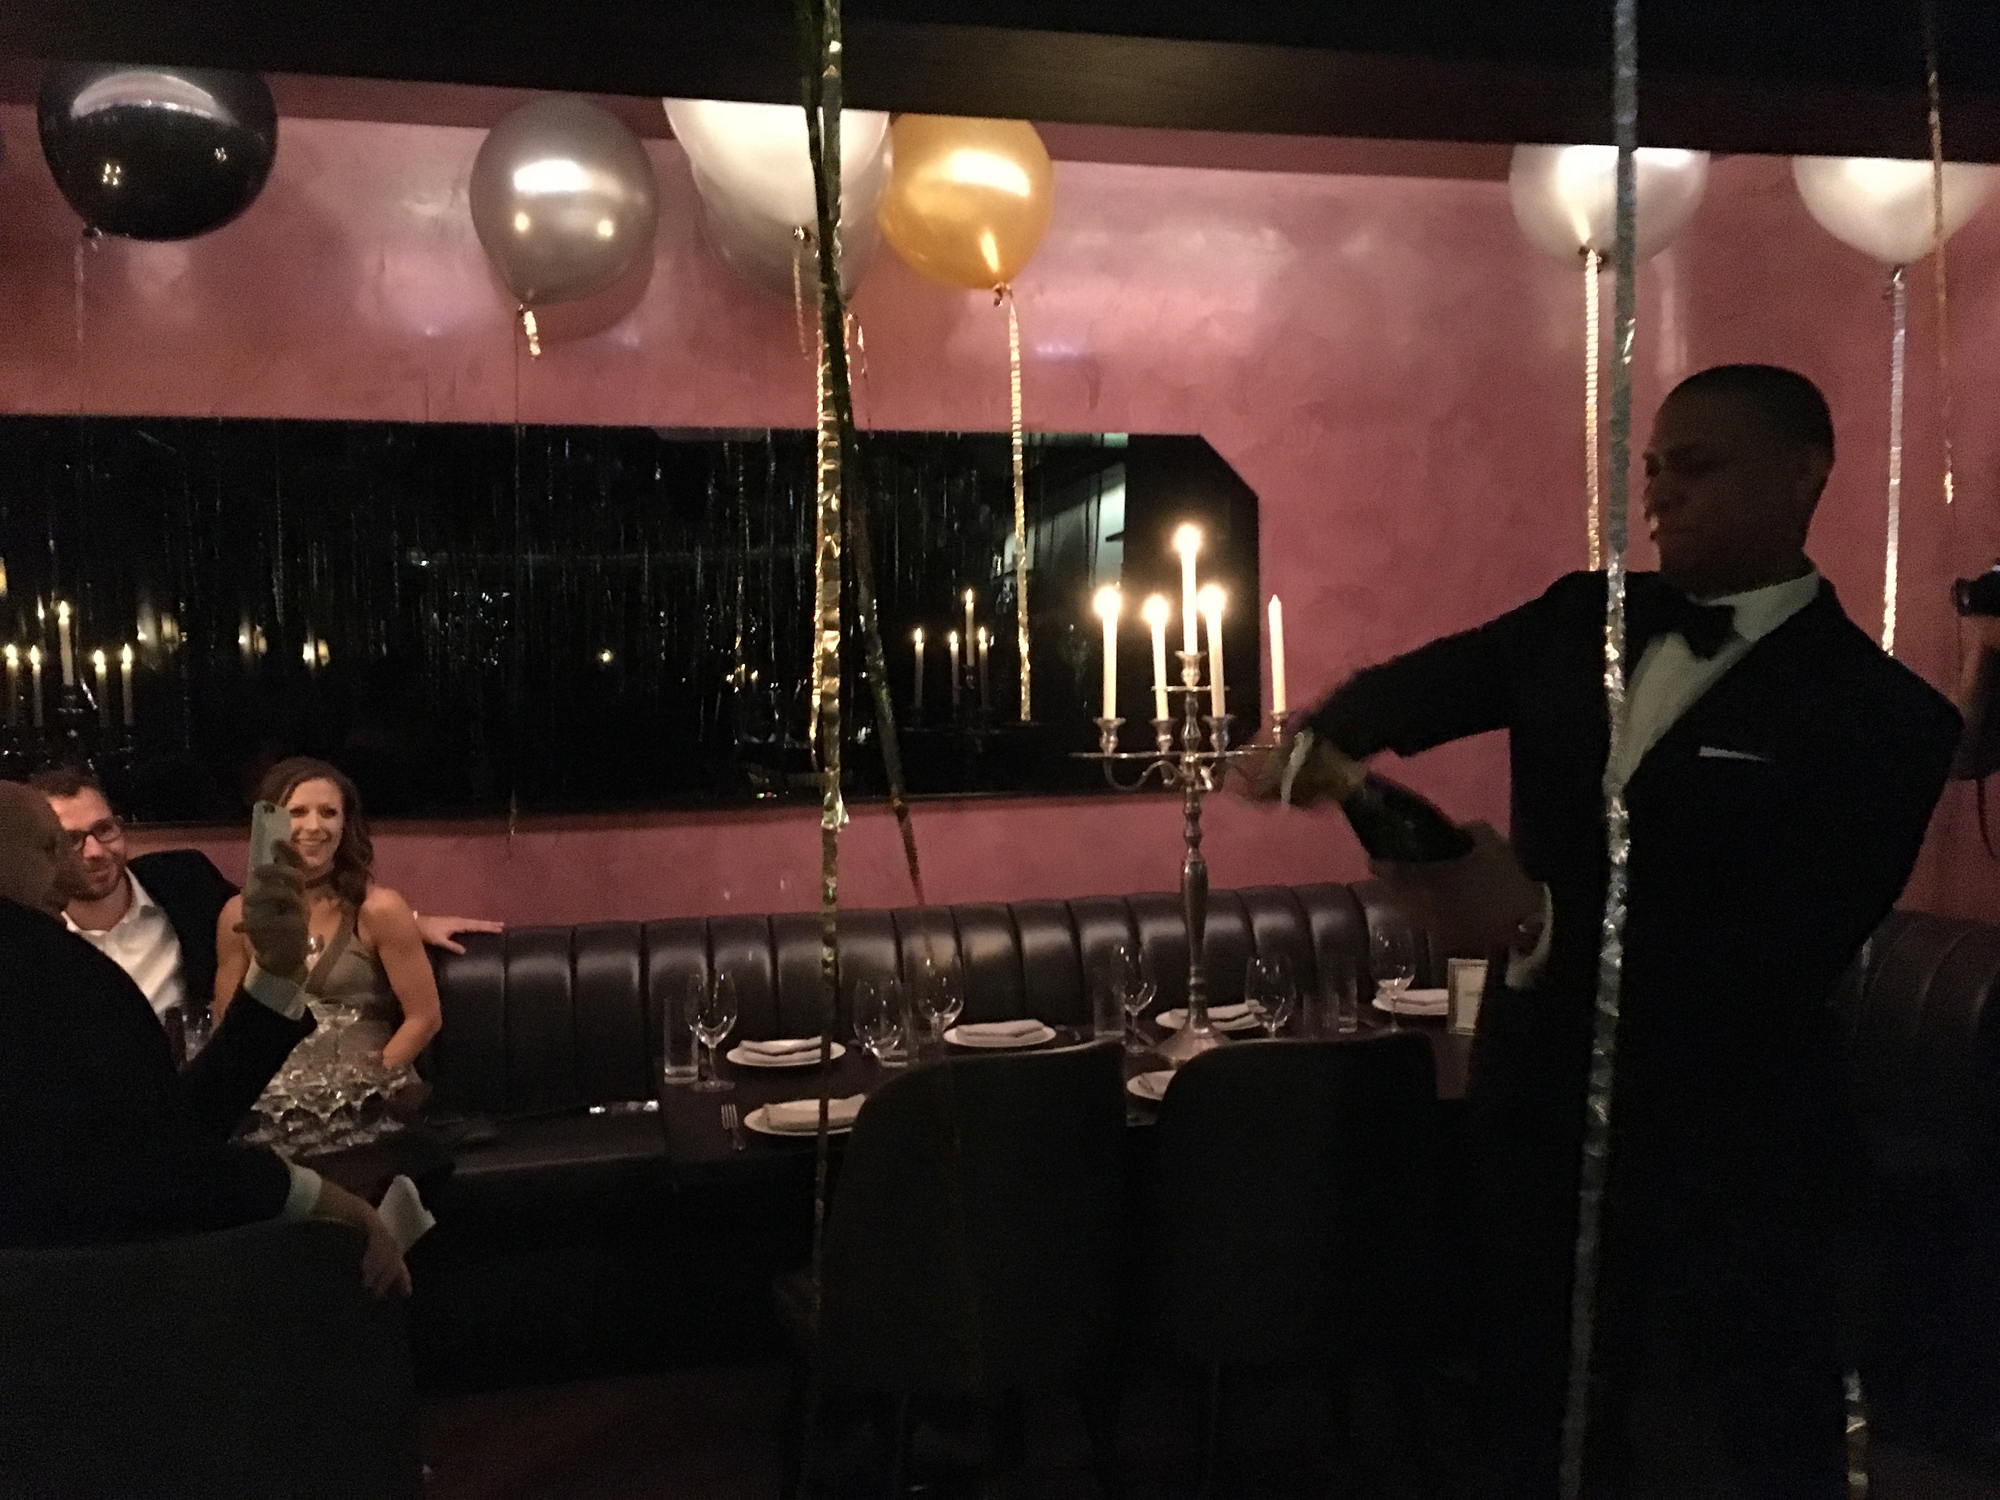 FOOD WRITER WORKS NEW YEAR'S EVE AT CHICAGO STEAKHOUSE!